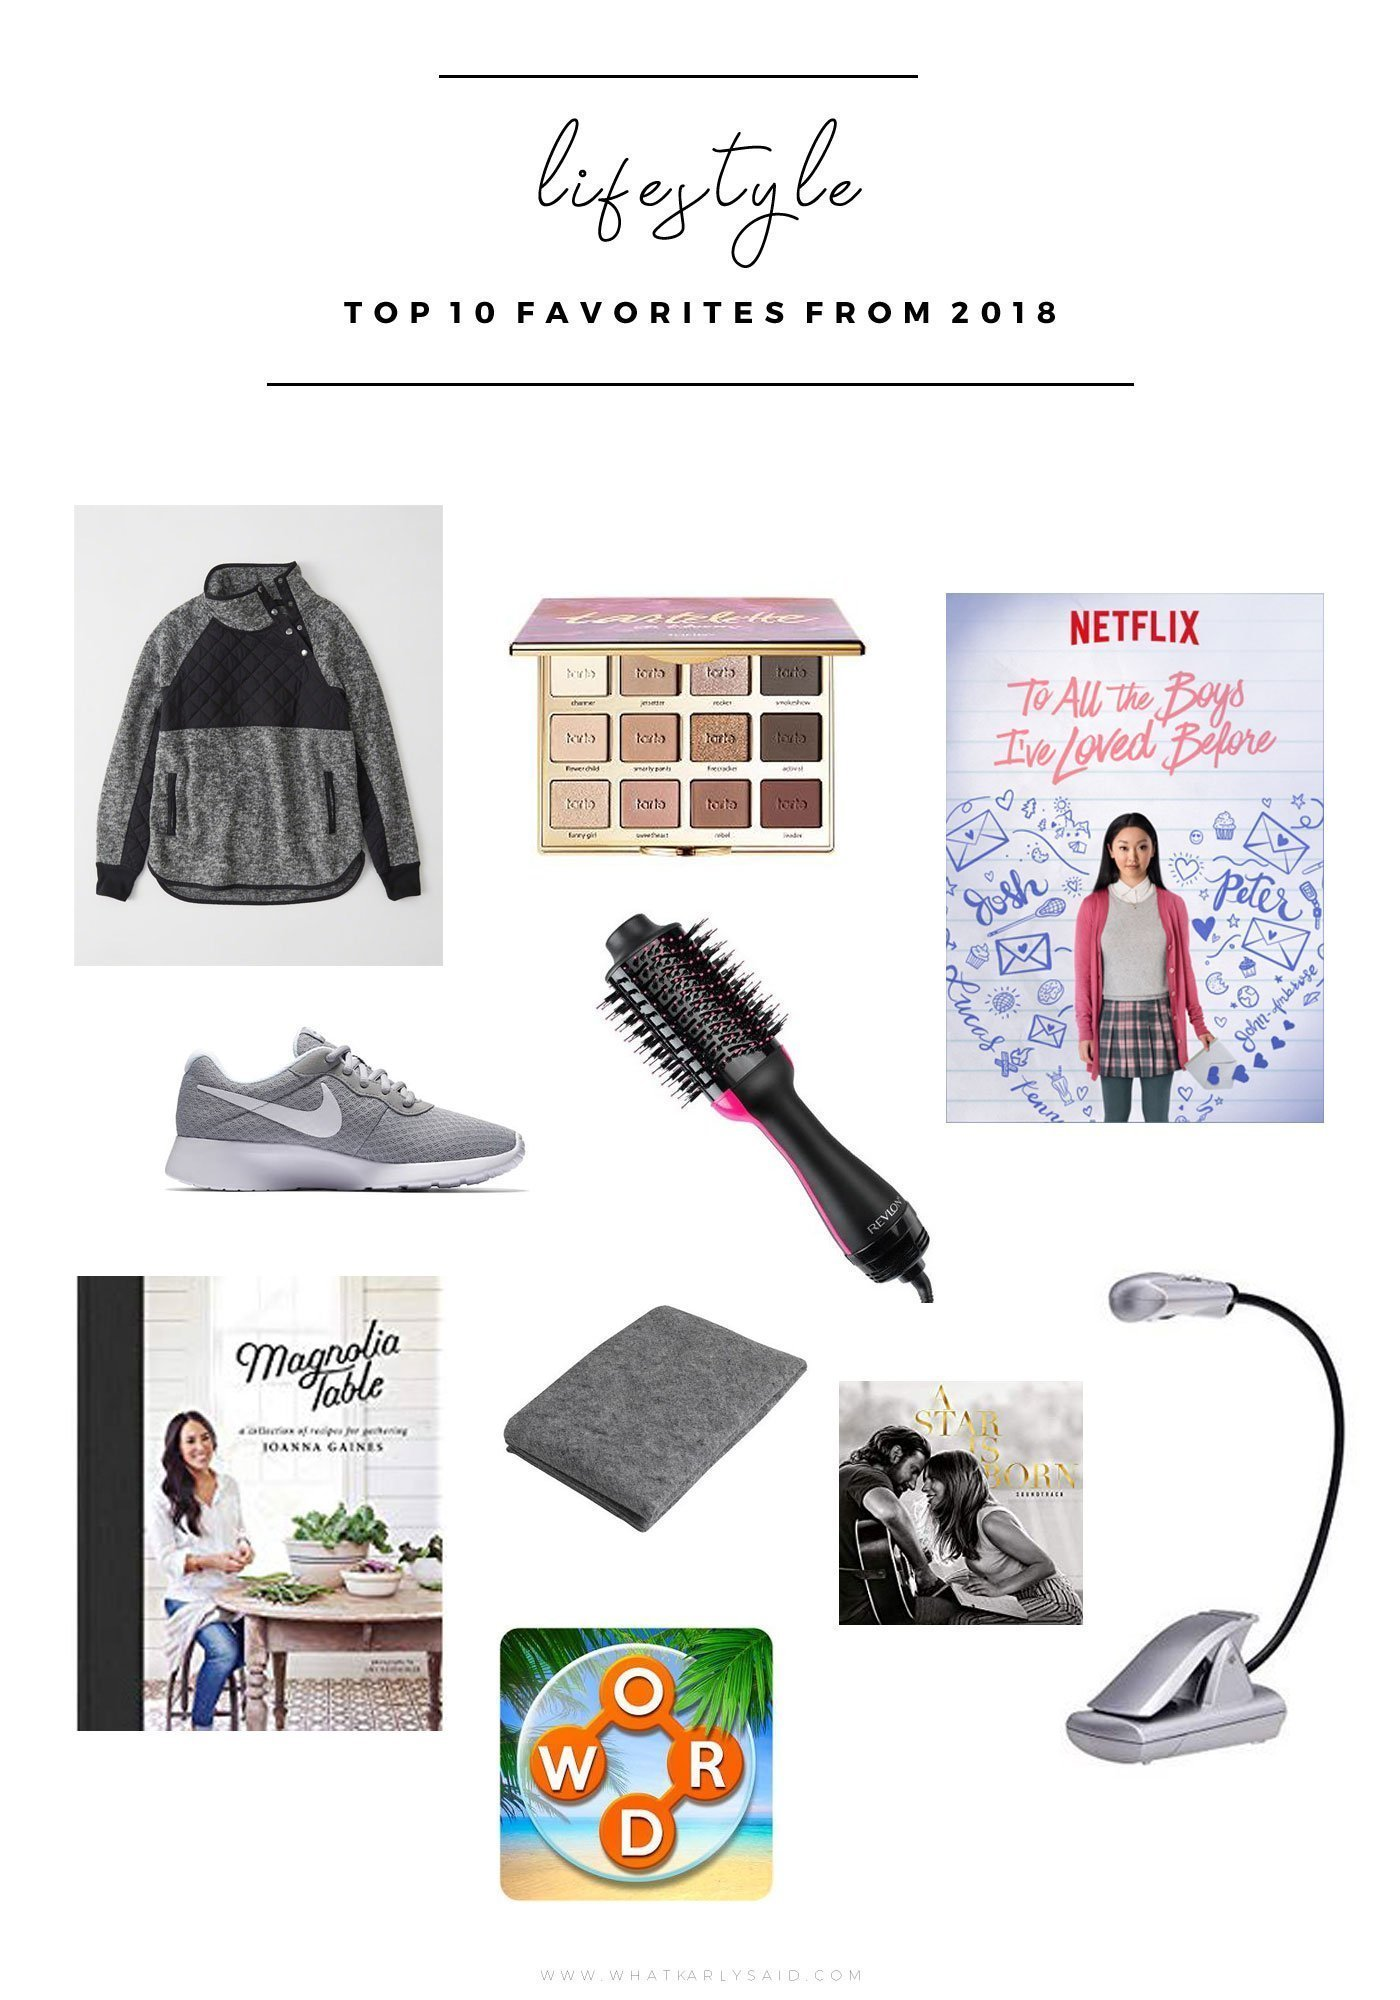 Top 10 Lifestyle Favorites From 2018